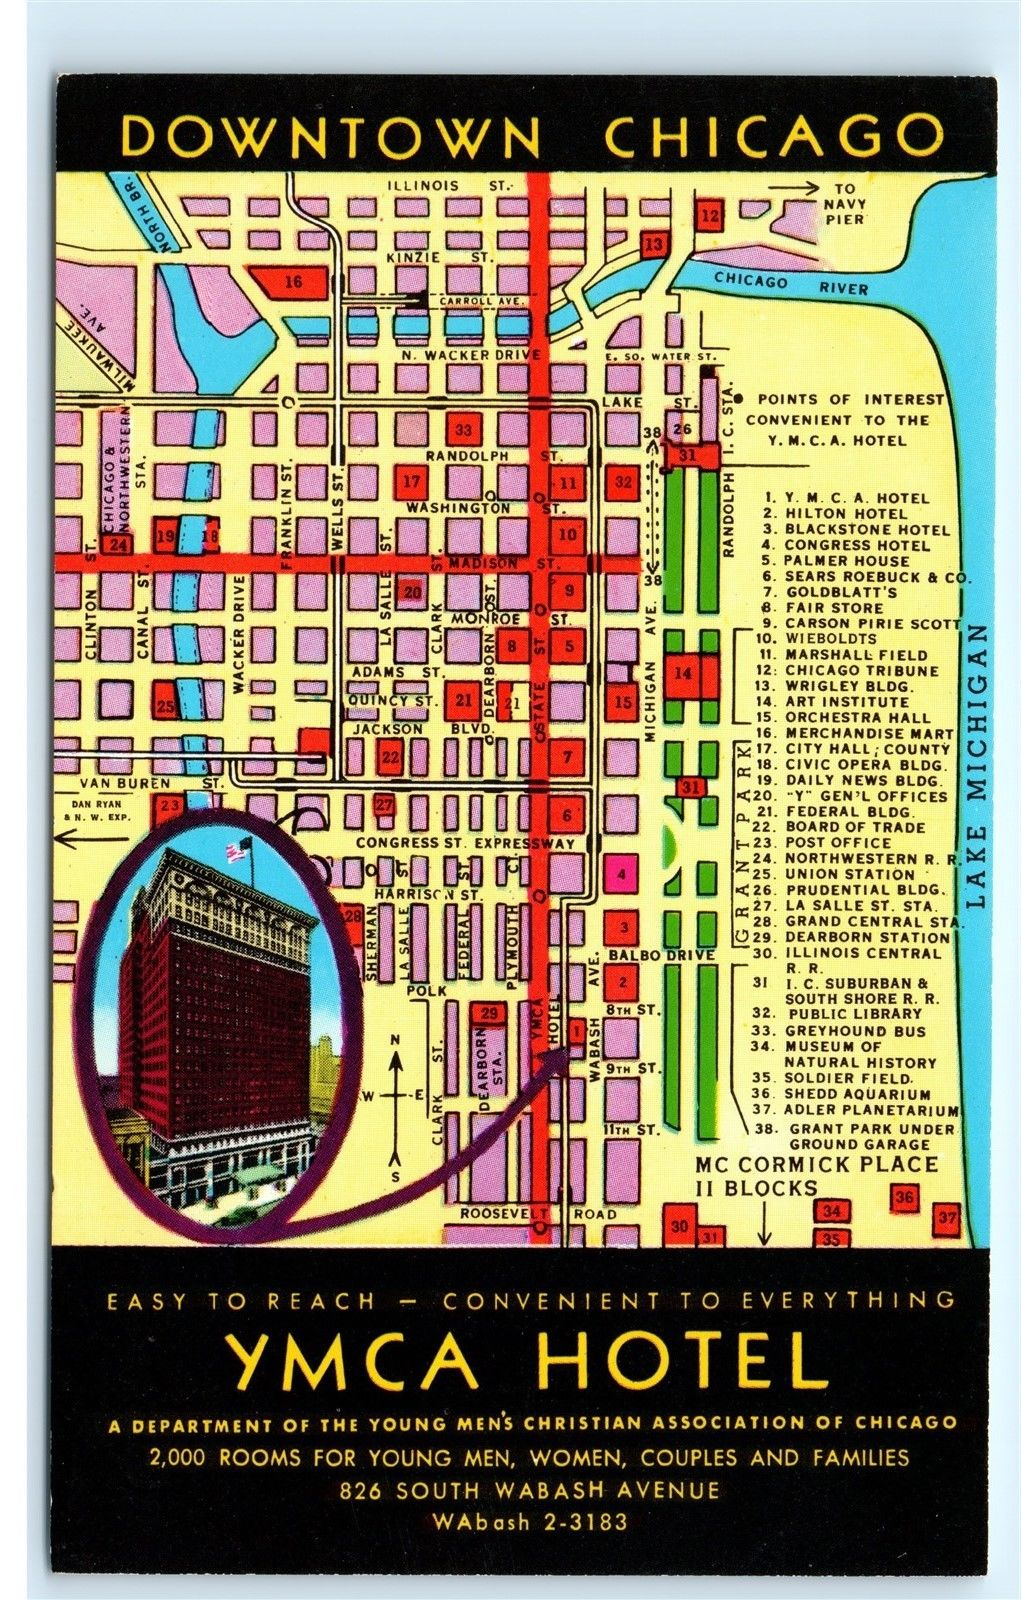 Zoomed Map Of Downtown Chicago on map of the loop chicago, map of michigan ave chicago, map of wrigleyville chicago, printable map of chicago, map of chicago neighborhoods, map of lake shore drive chicago, map of midwest states with cities, map of grant park, lincoln park chicago, detailed street map chicago, map of chicago divergent, tourist map of chicago, map of chicago gold coast, map of museums chicago, grant park chicago, map of chicago hotels, map of chicago area, map of south loop, map of wrigley field, soldier field chicago,